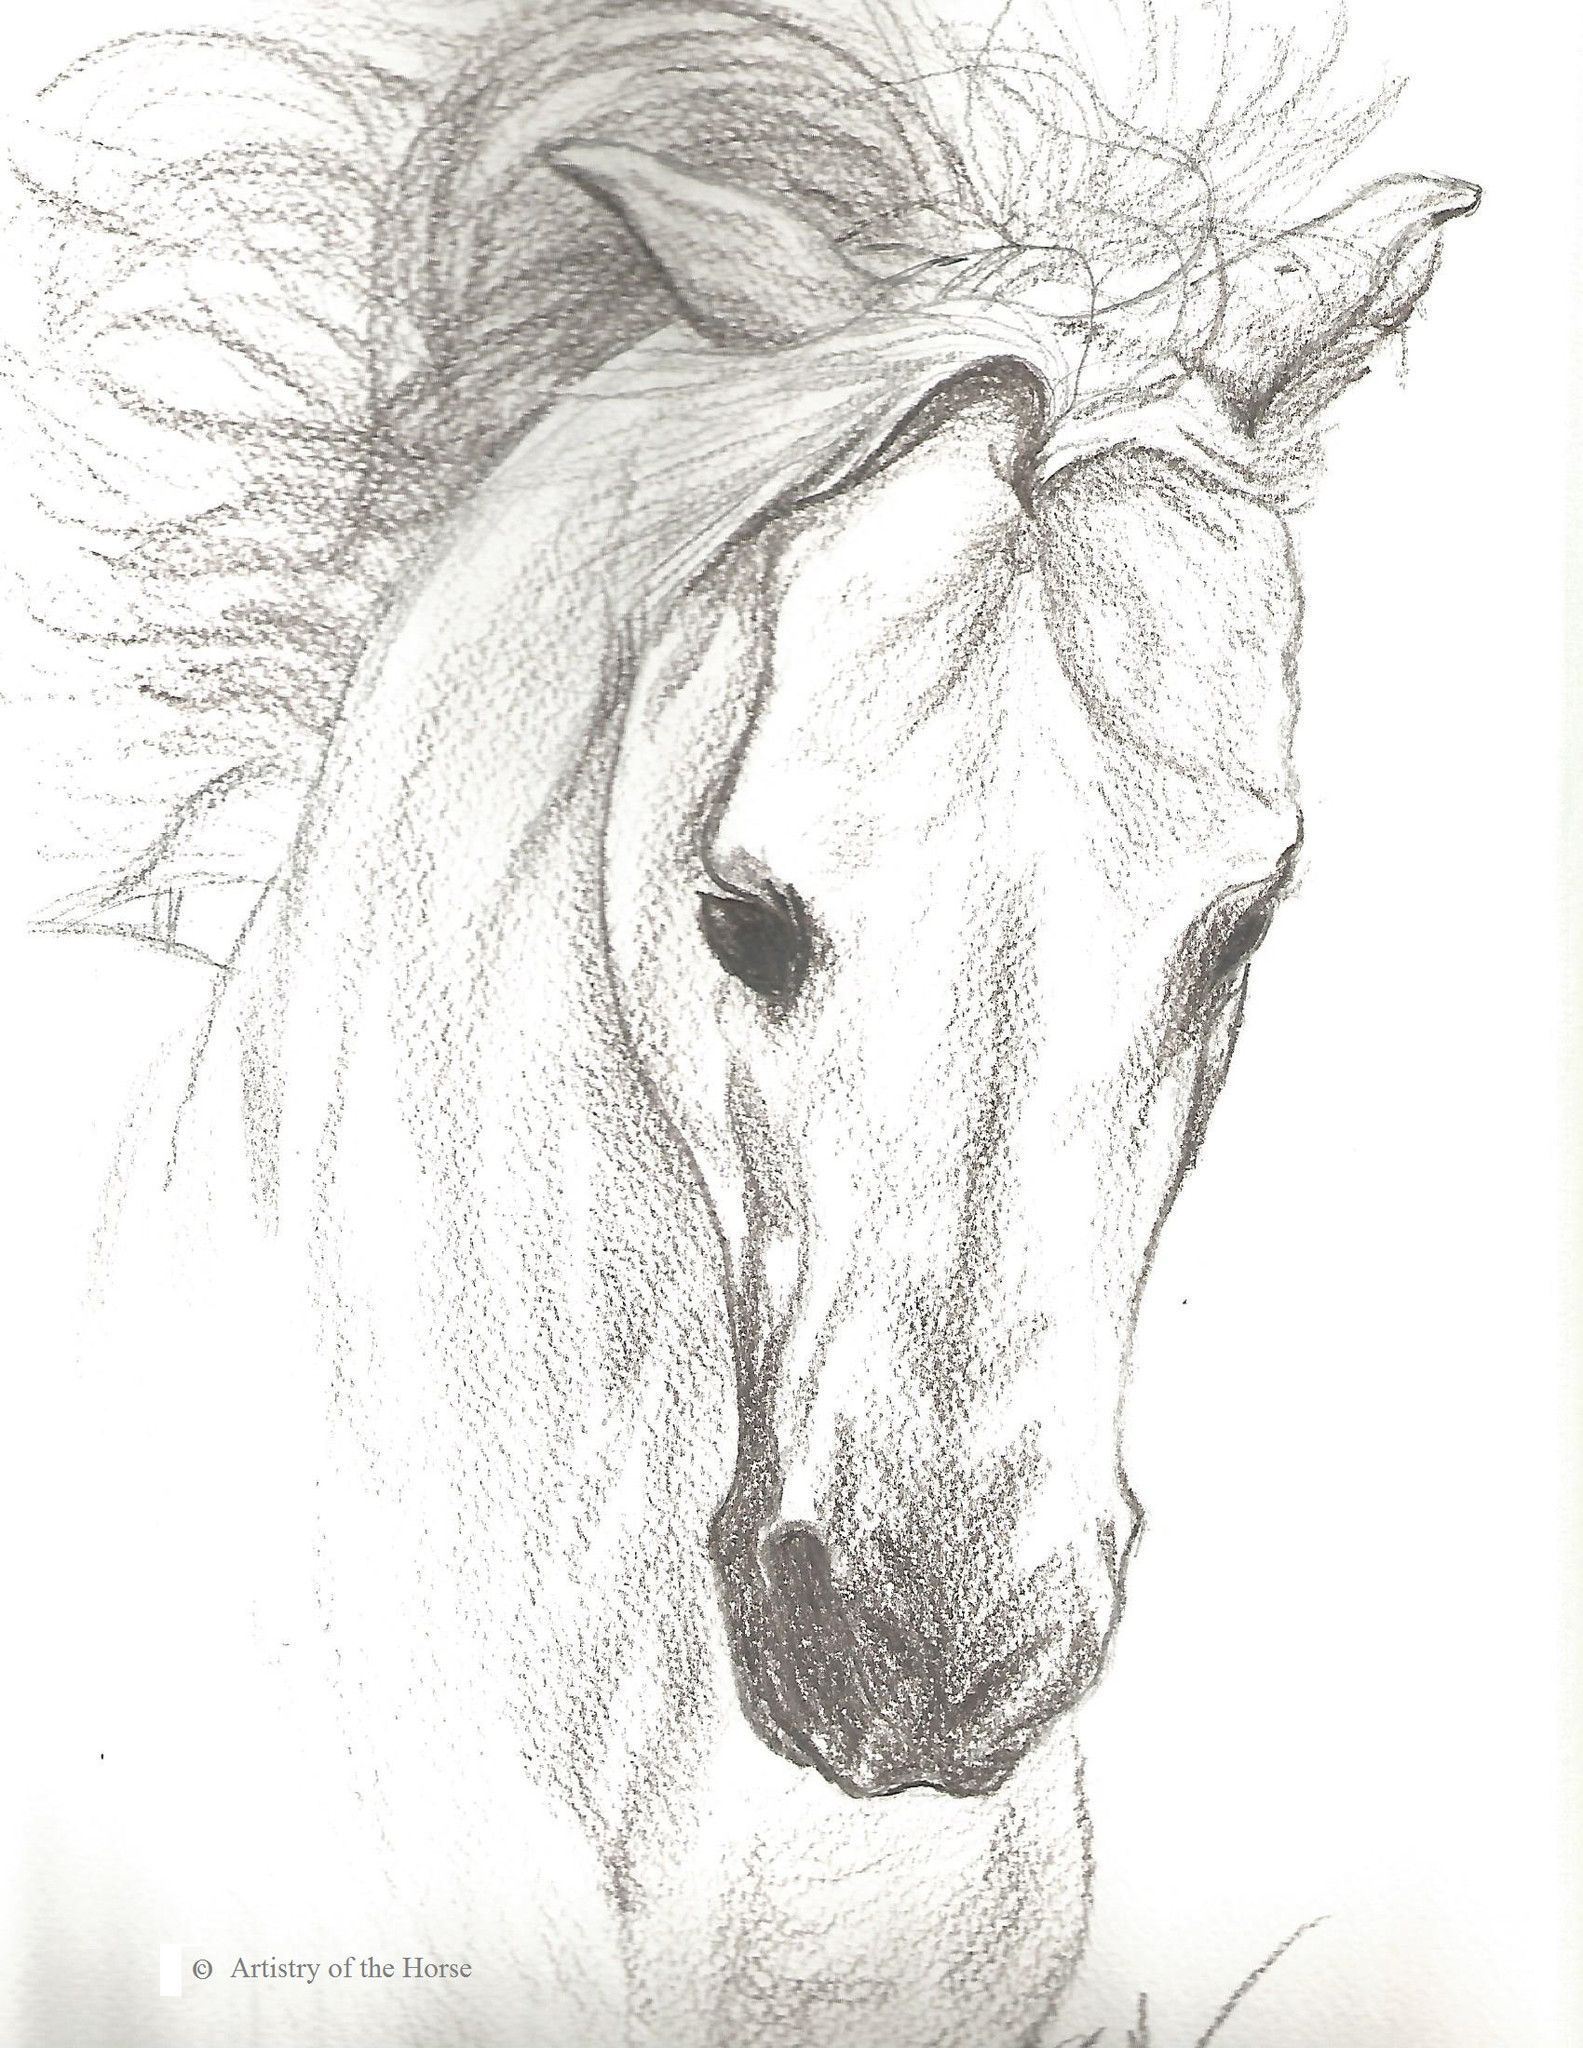 Horse portrait of a grey arabian stallion done in pencil on watercolor paper this is an original drawing for sale the drawing is 9 inches x 12 inches in